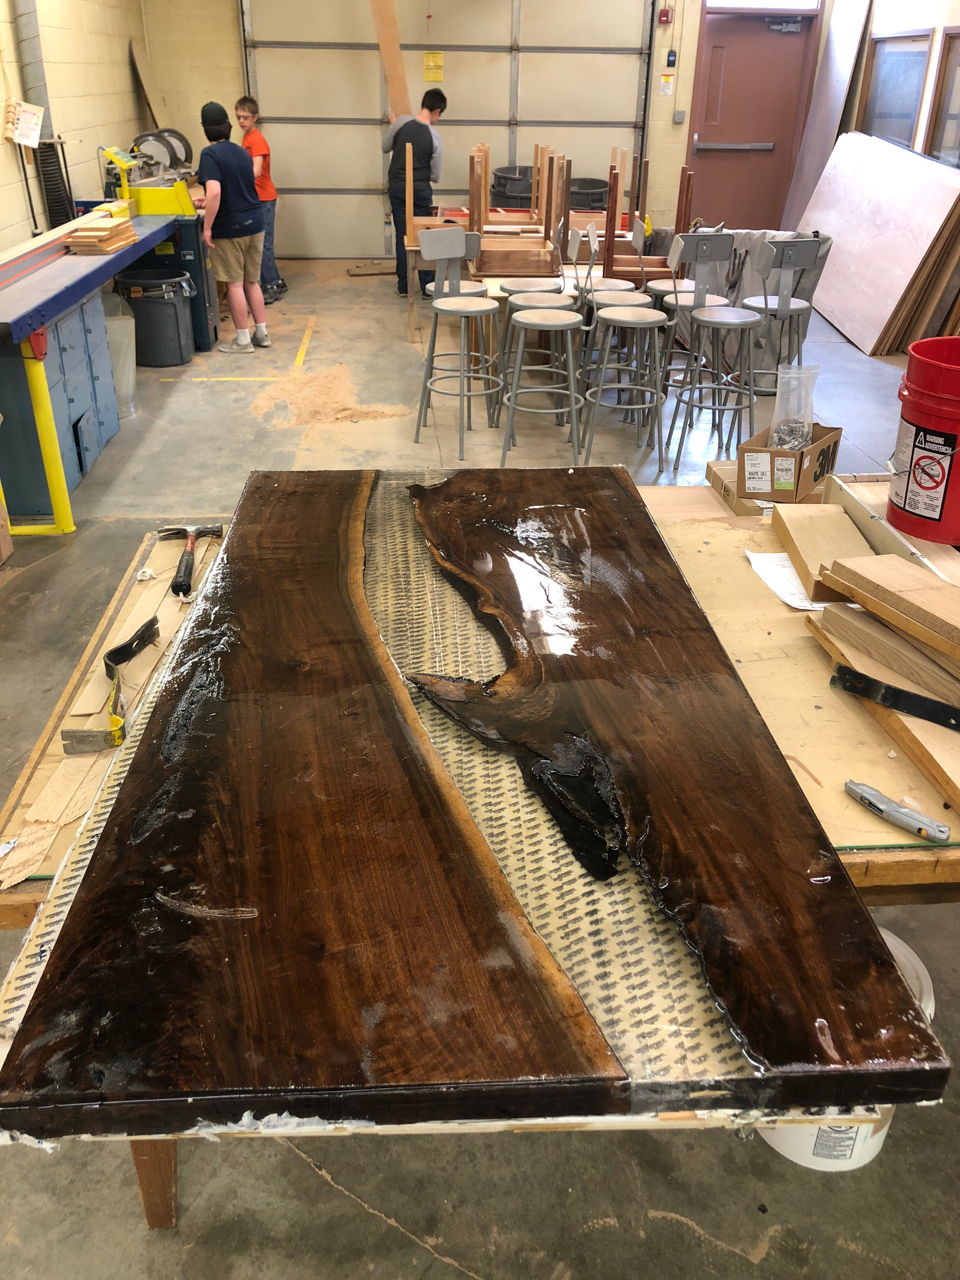 My son has been working on a project in his woods class for the studio. We ordered a huge slap of walnut and a bunch of epoxy and he has been constructing this table for our instrument gallery room. There is still a lot of planing and sanding to be done but it's going to look great.